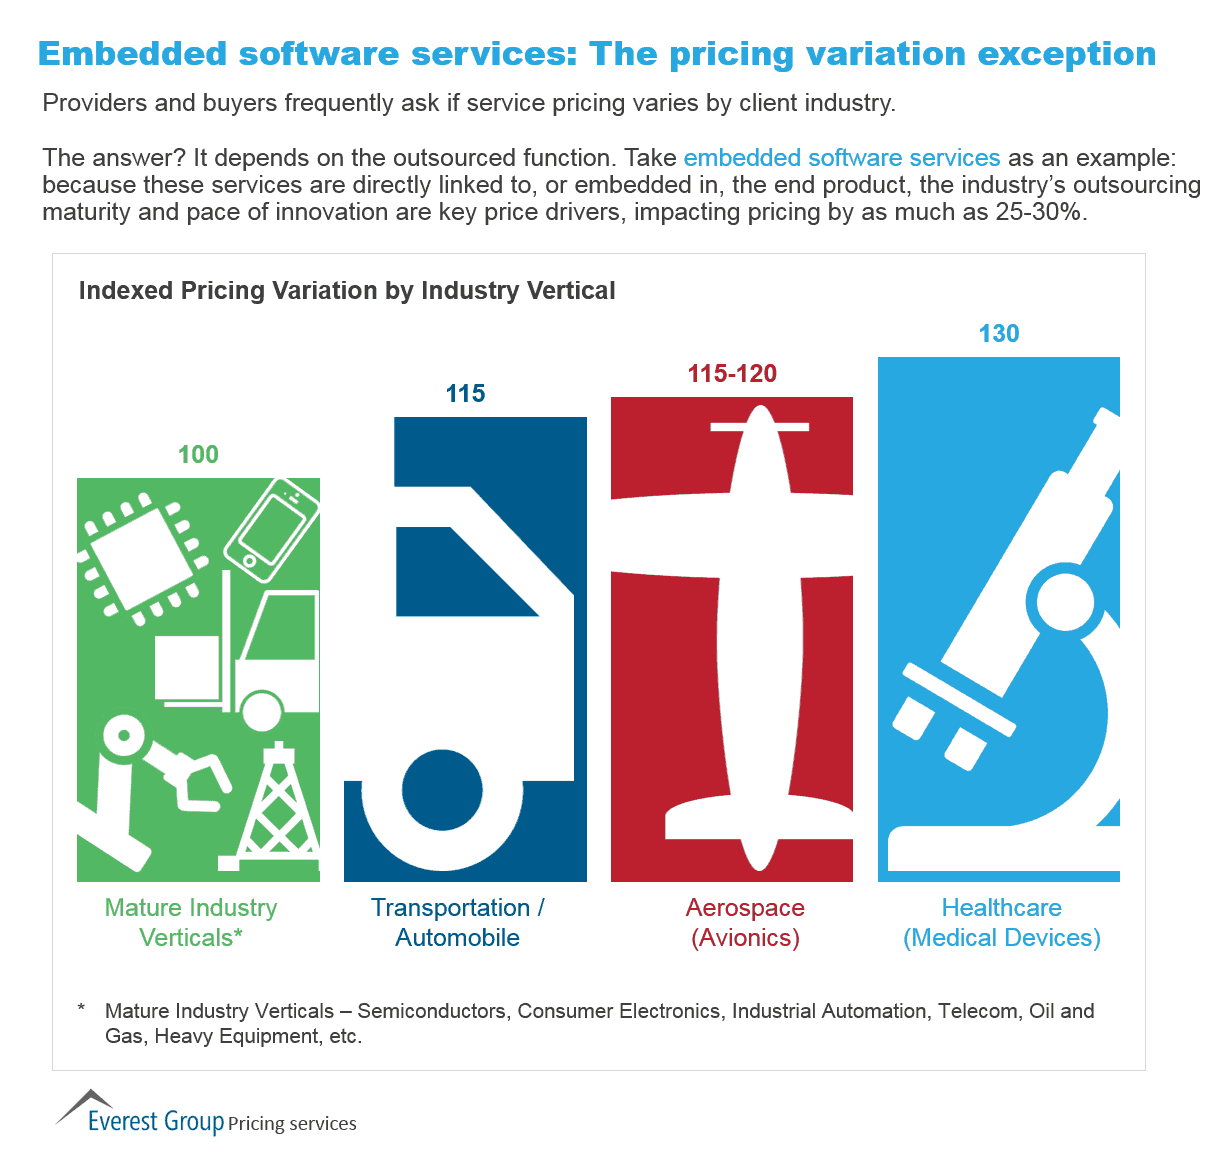 industry specific strategies archives everest group pricing variation by industry pricing 2015